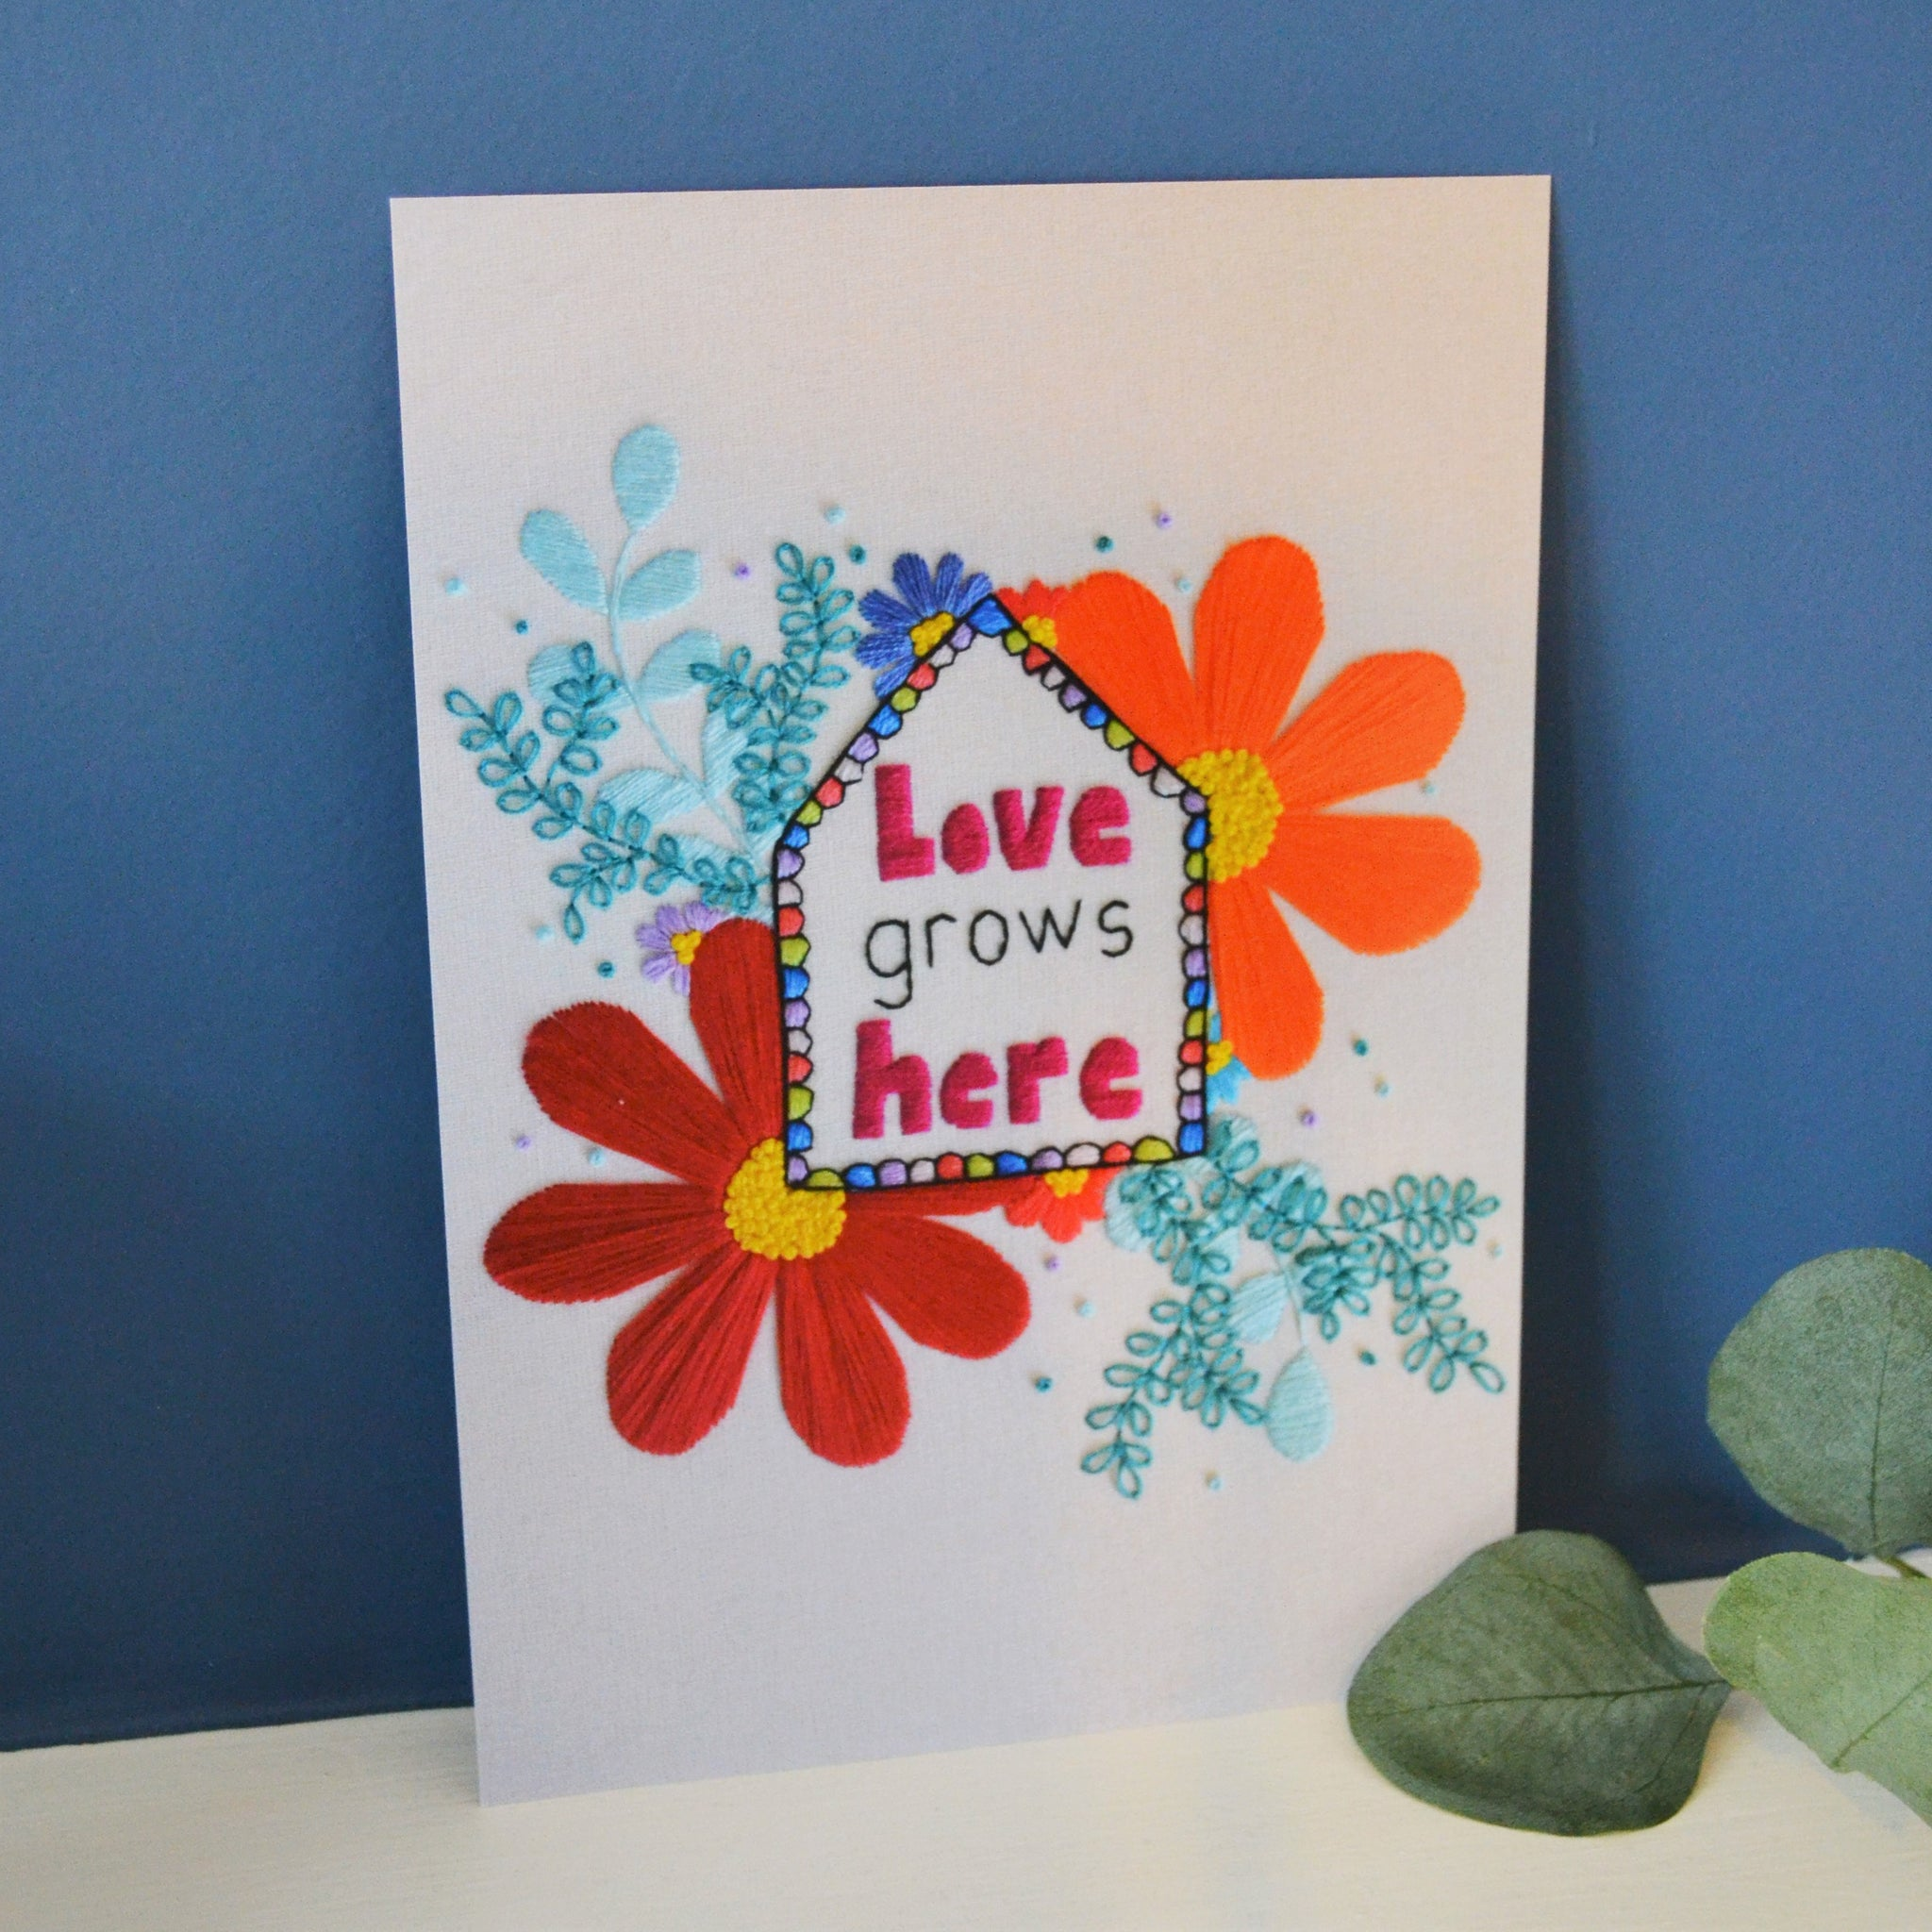 An a5 print of a hand embroidery with the quote love grows here at the centre of a basic house shape. Surrounding the house shape is a range of bright coloured flowers and leaf patterns. The print is propped up against a blue wall next to a small houseplant